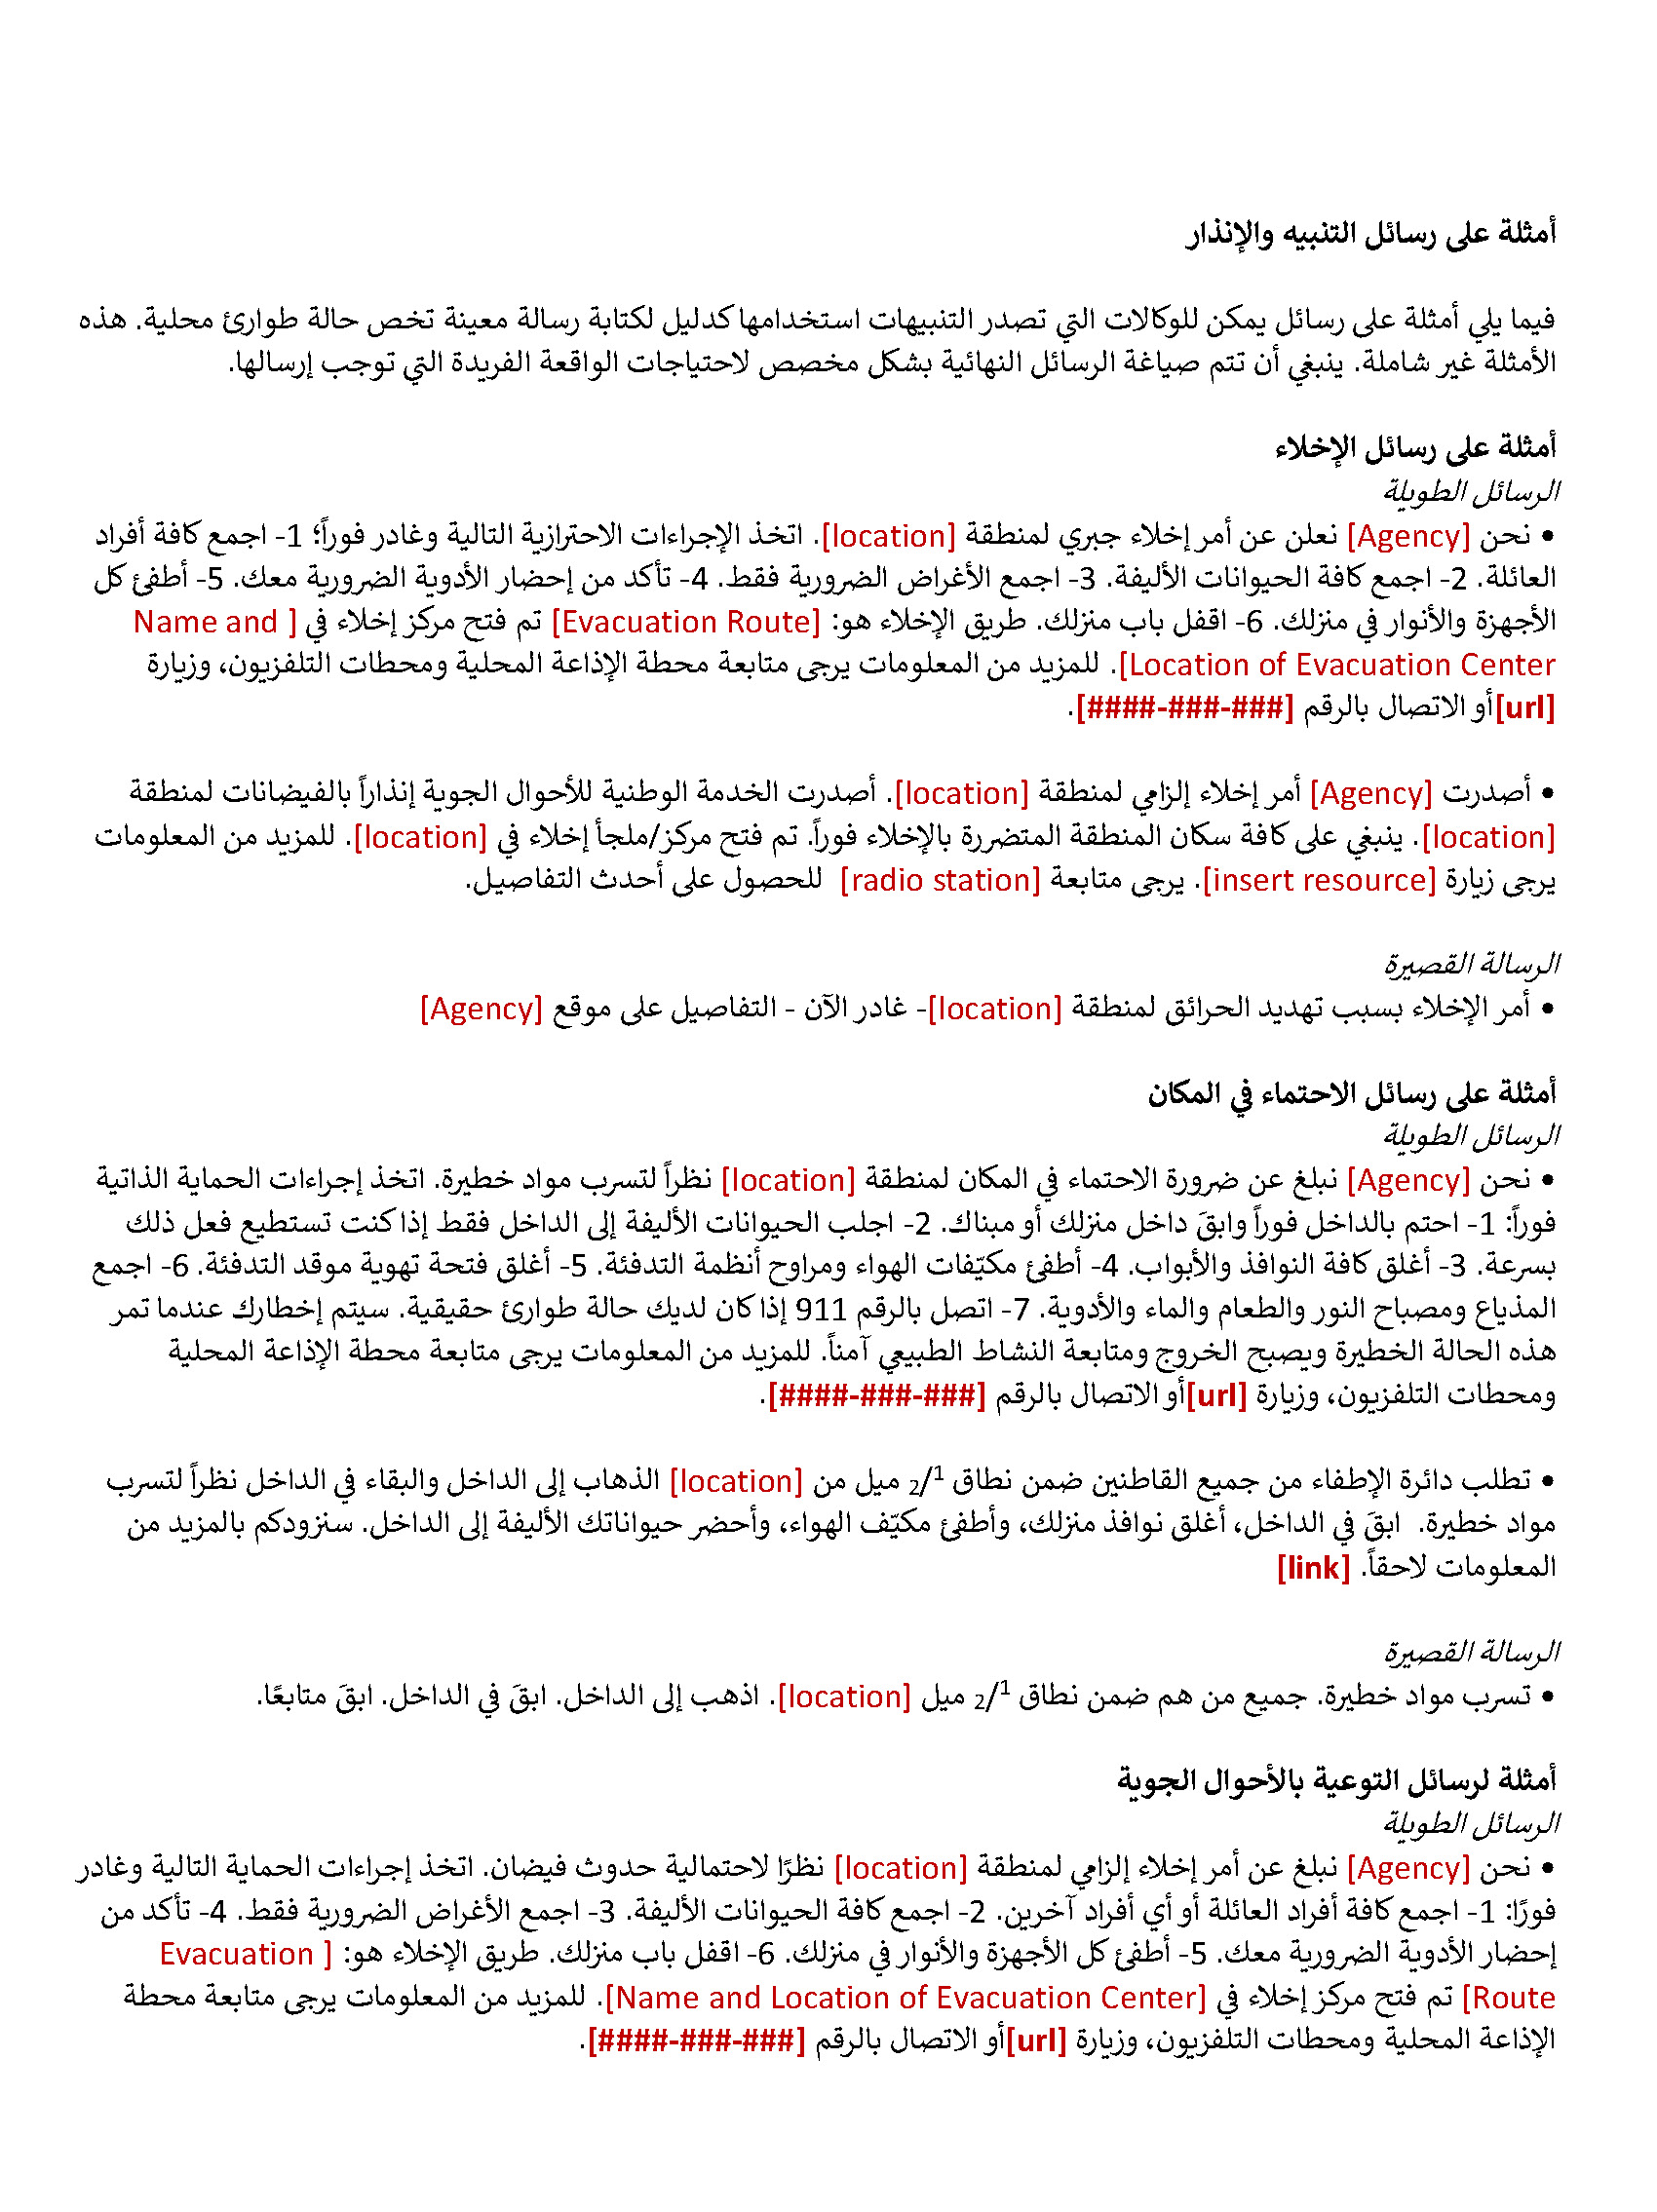 Image of the Sample AW Messages Arabic document